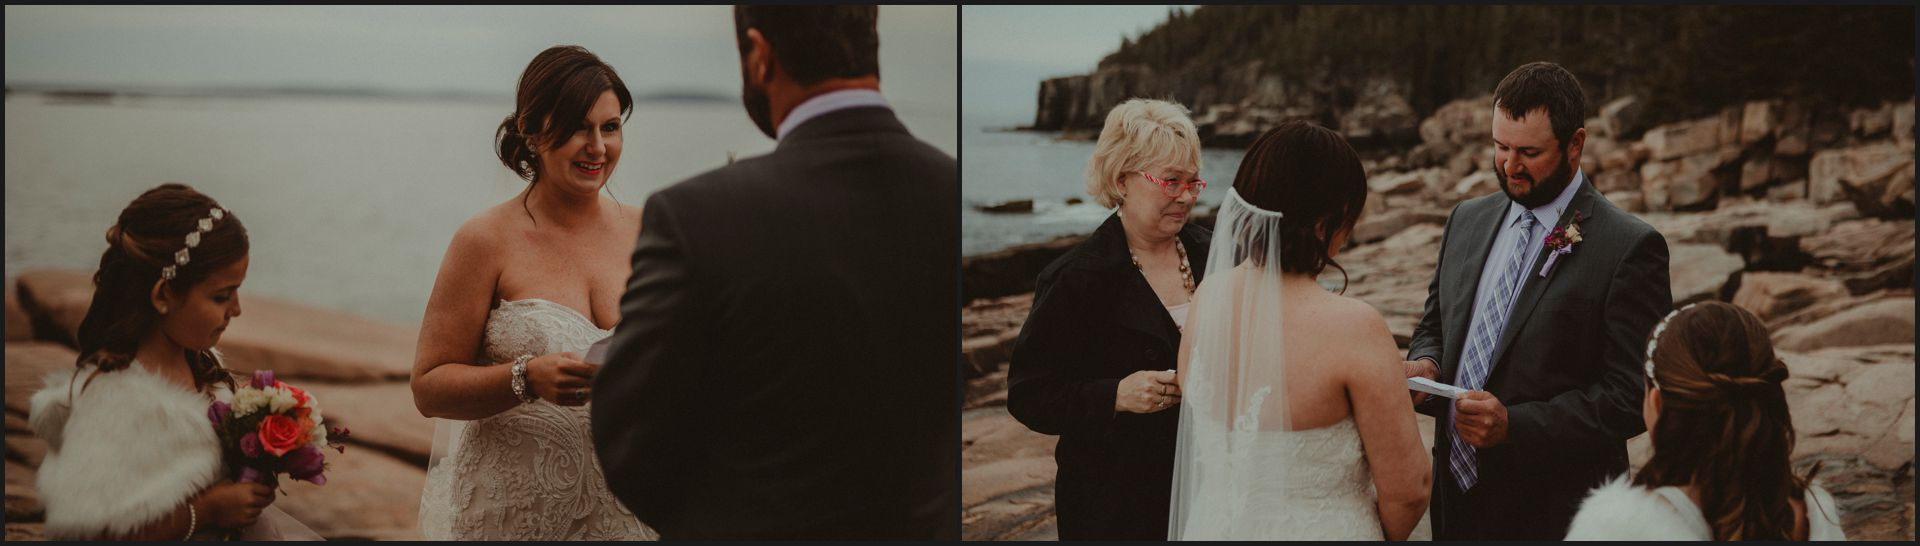 ceremony by the ocean, maine wedding, celebrant, bride and groom, acadia national park